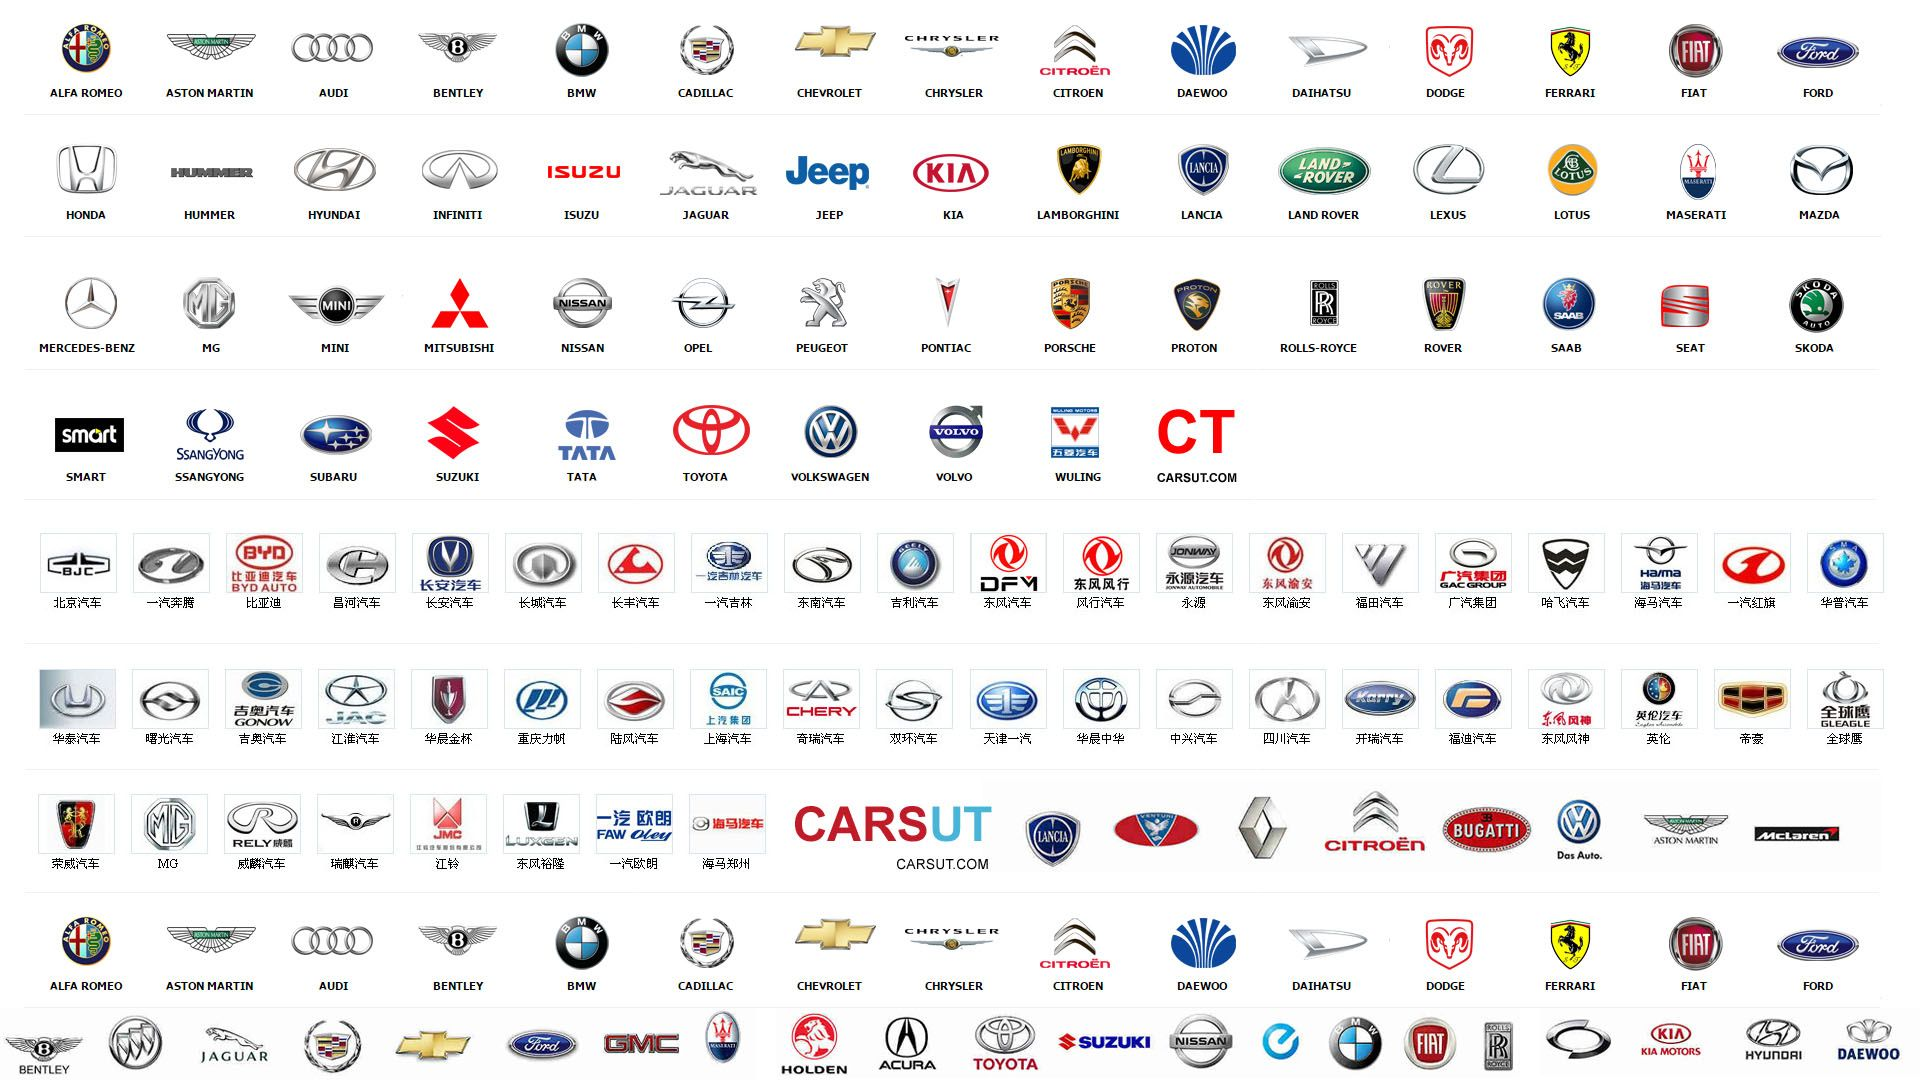 Pin By Manuel Alejandro Cruz Azul On Autos All Car Logos Car